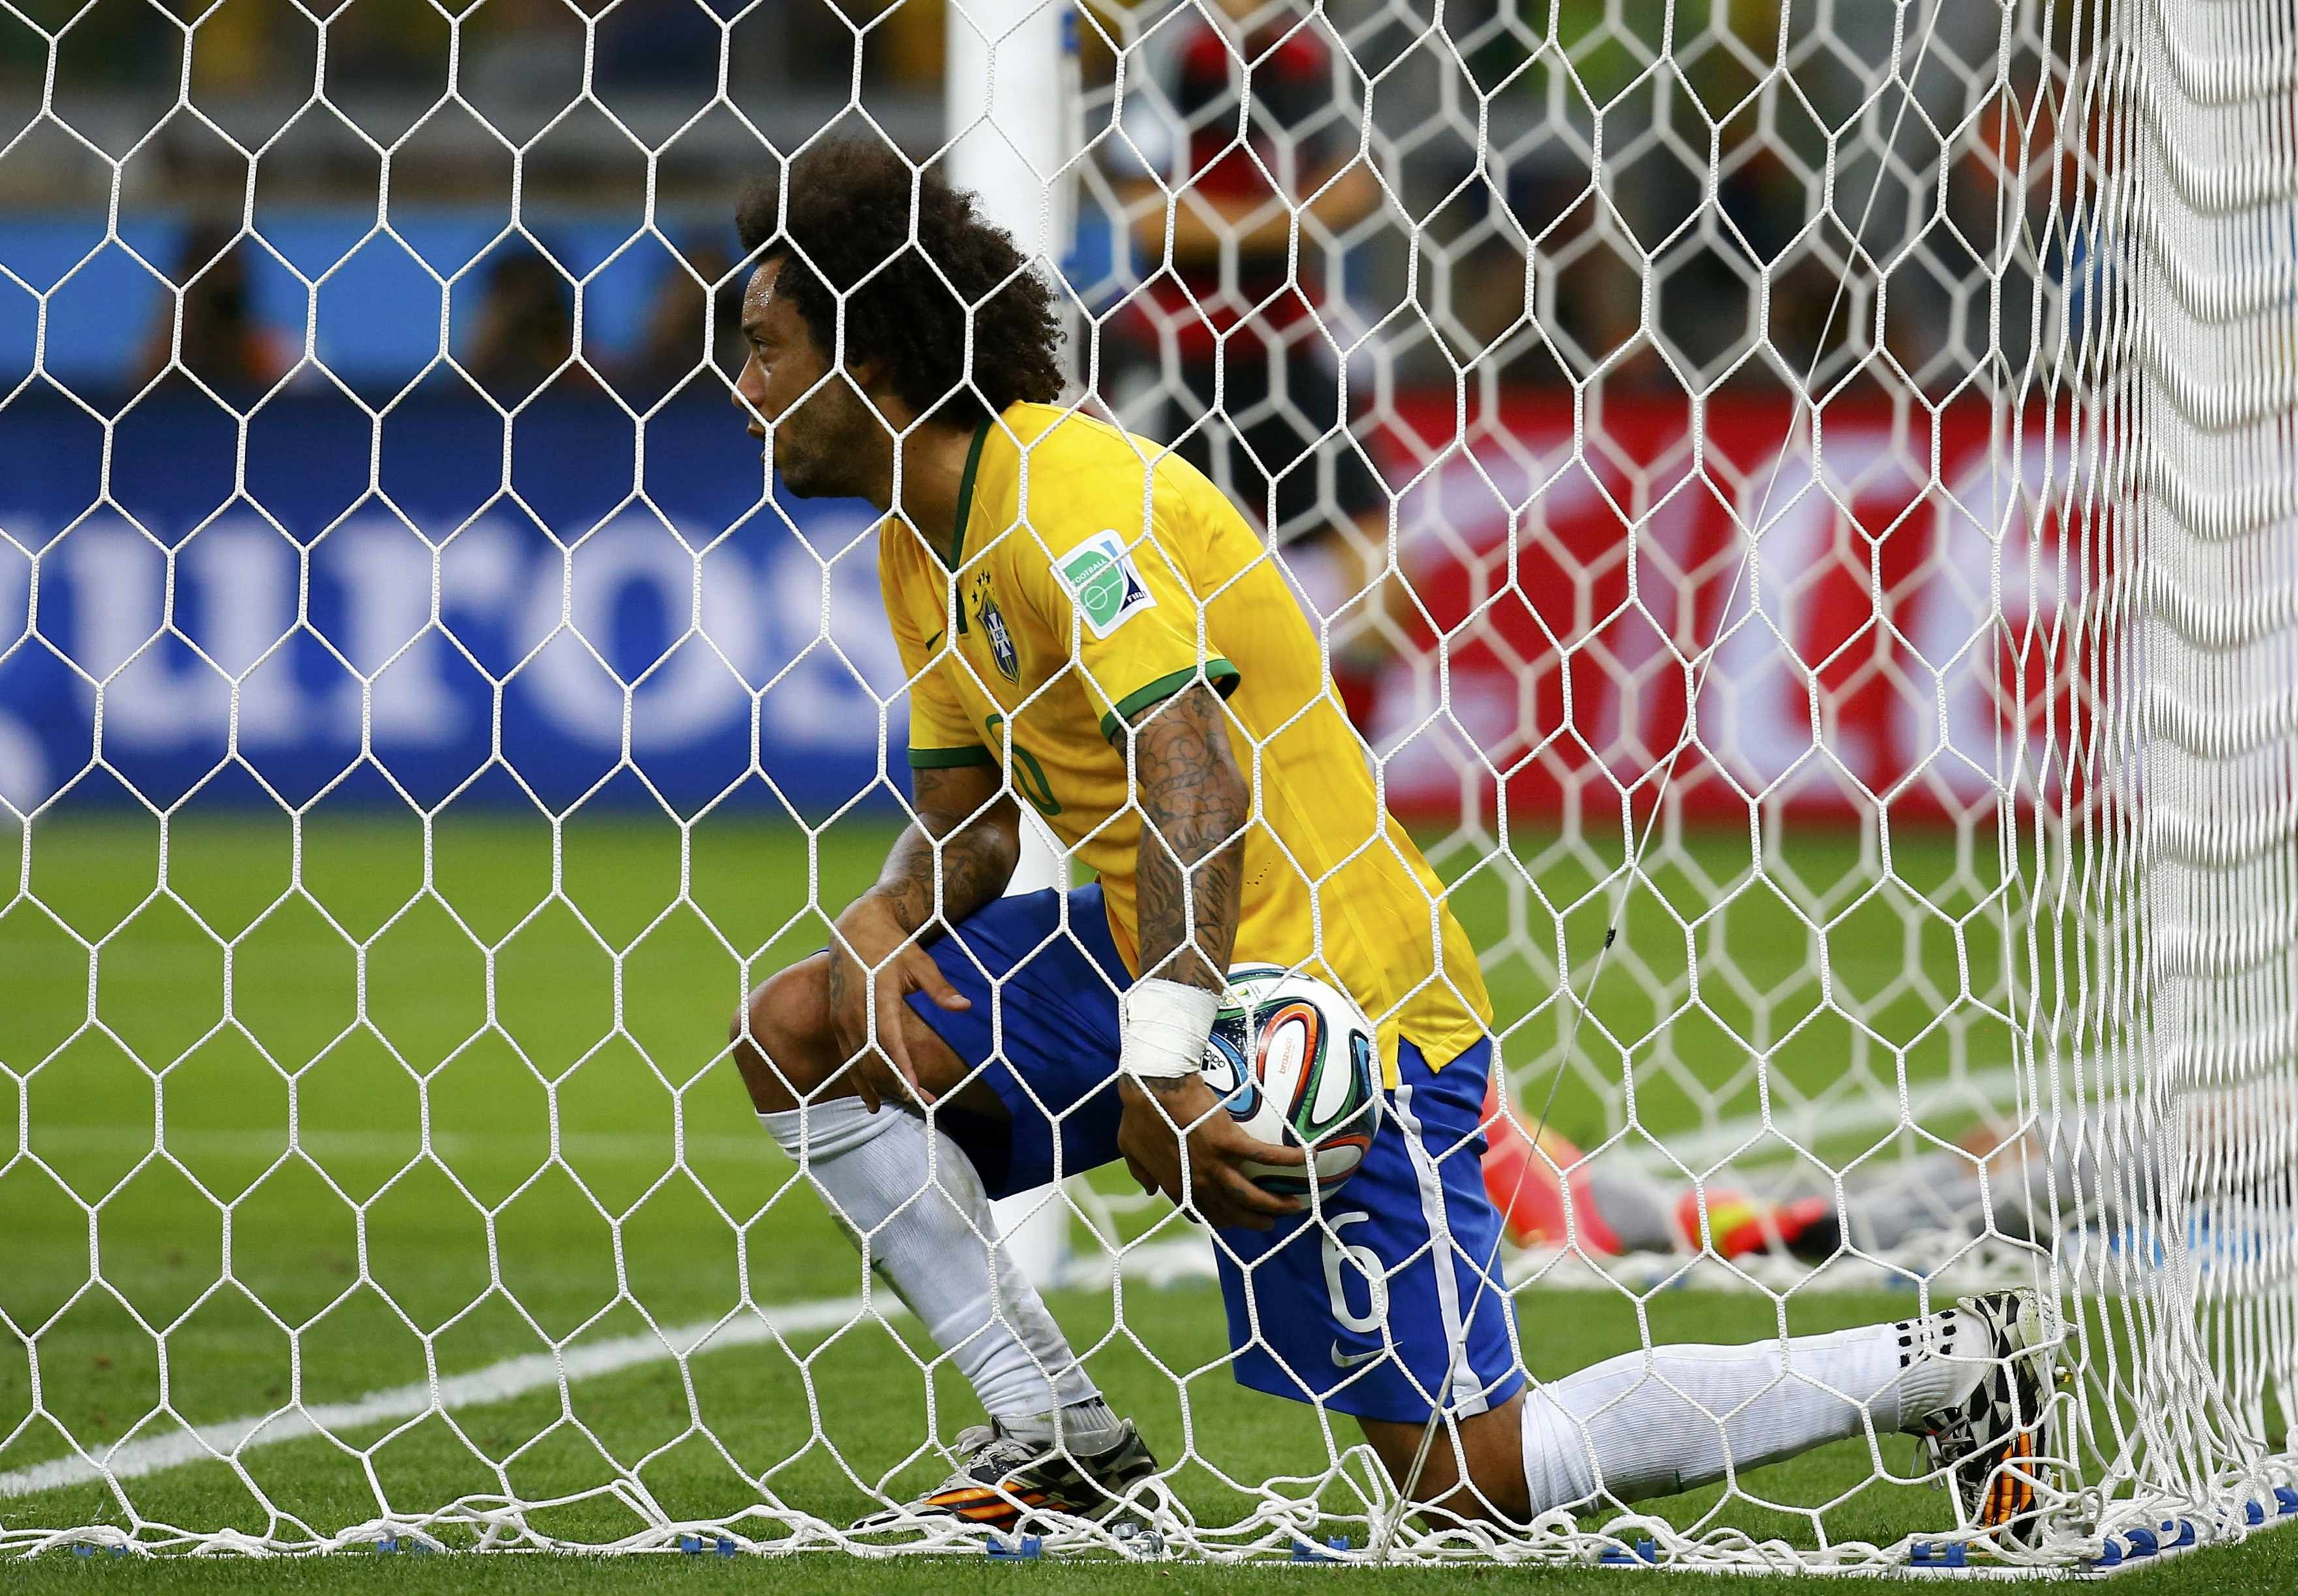 Brazil's Marcelo reacts after Germany's Andre Schuerrle scored the team's seventh goal at the Mineirao stadium in Belo Horizonte on July 8, 2014.